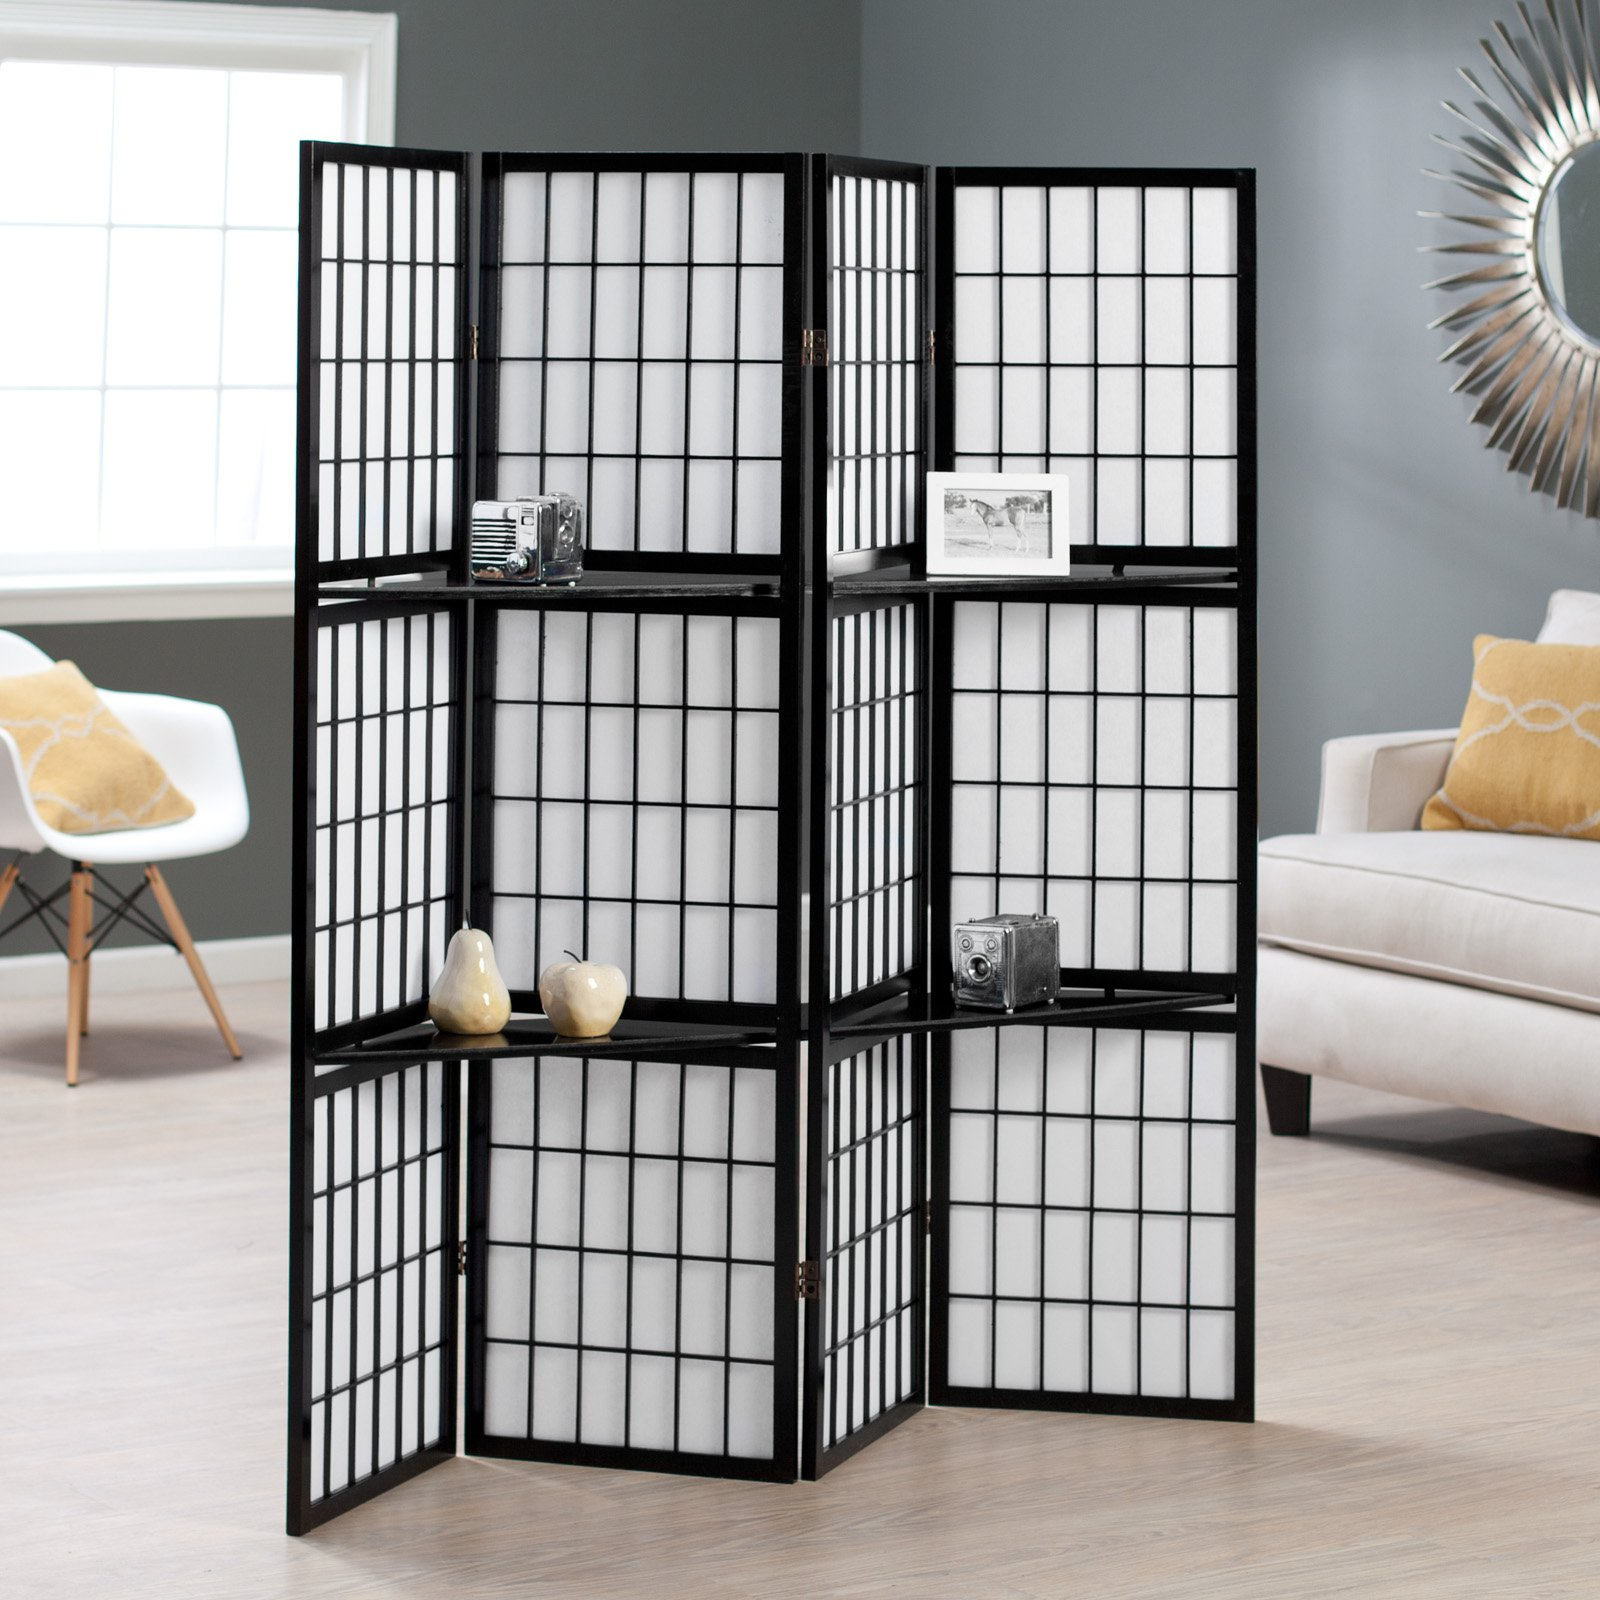 Black Shoji 4-Panel Screen Room Divider with Display Shelves - Walmart.com & Black Shoji 4-Panel Screen Room Divider with Display Shelves ...